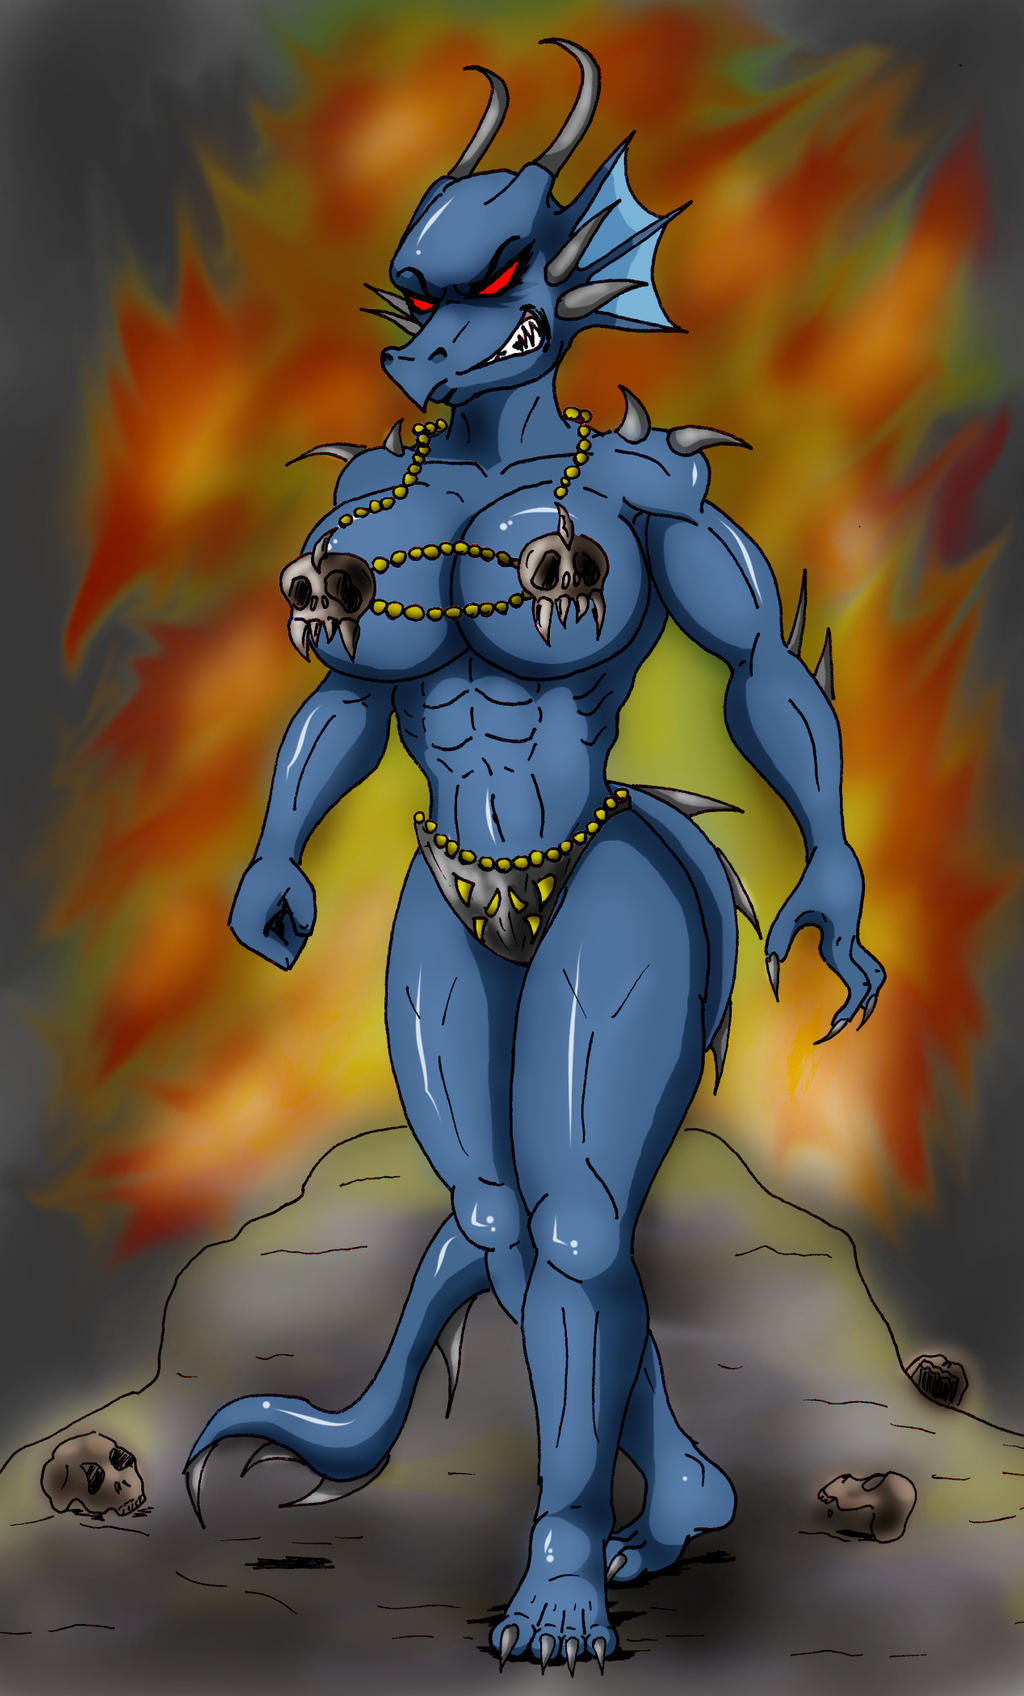 Anthro dragoness nude picture